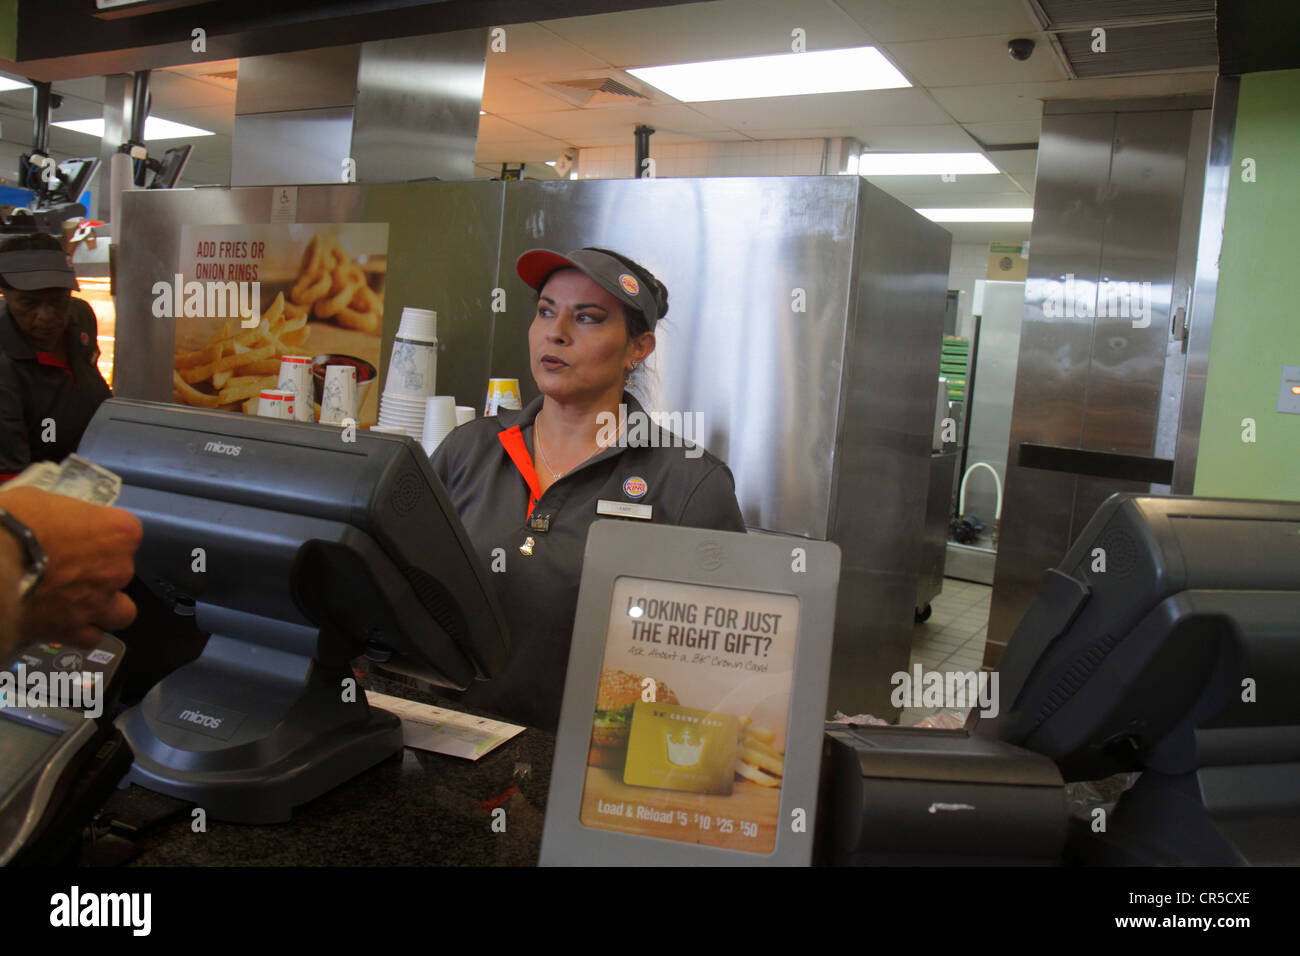 Latinos And Fast Food